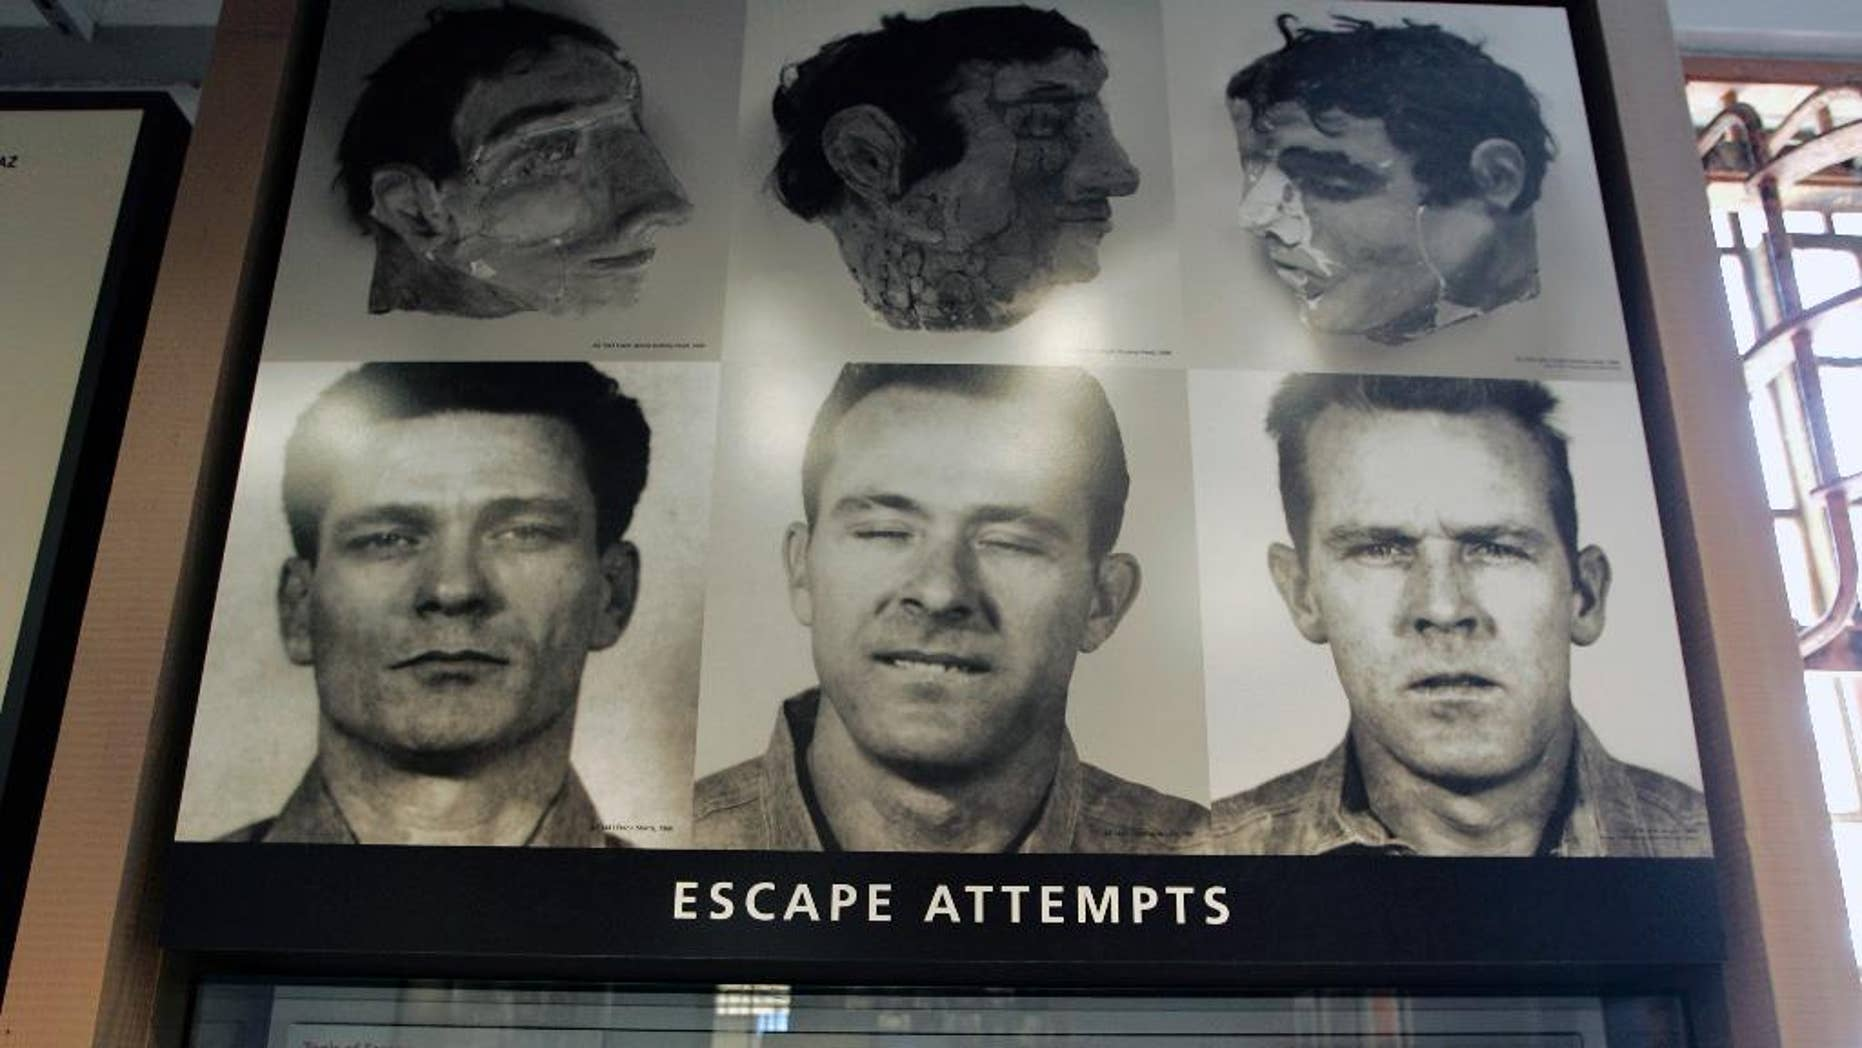 """FILE - In this April 24, 2007, file photo, an exhibit about a 1962 prison escape made famous in the movie, """"Escape from Alcatraz,"""" is displayed in the museum store on Alcatraz Island in San Francisco. Scientists say the three prisoners who escaped from Alcatraz in one of the most famous and elaborate prison breaks in U.S. history could have survived and made it to land. Using software to study currents the night of the 1962 escape, three Dutch scientists concluded the three men could have made it to land north of the Golden Gate Bridge if they left between 11:30 p.m. and midnight.  Prison officials and federal agents insisted at the time that the inmates perished, but their bodies were never found.(AP Photo/Eric Risberg, File)"""